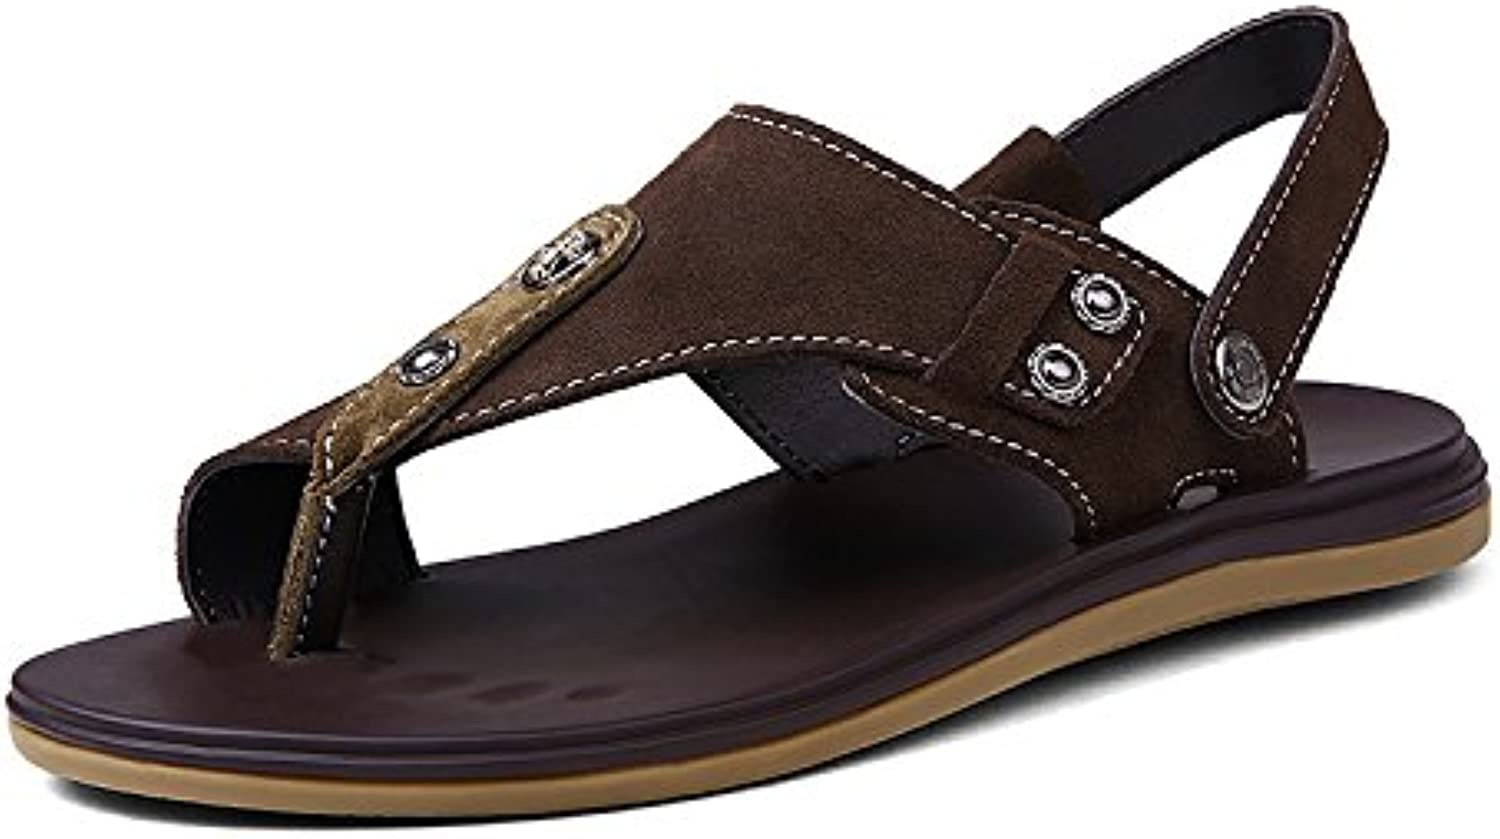 FYios Sandals, leather, teenagers, summer leather sandals, non slip casual shoes